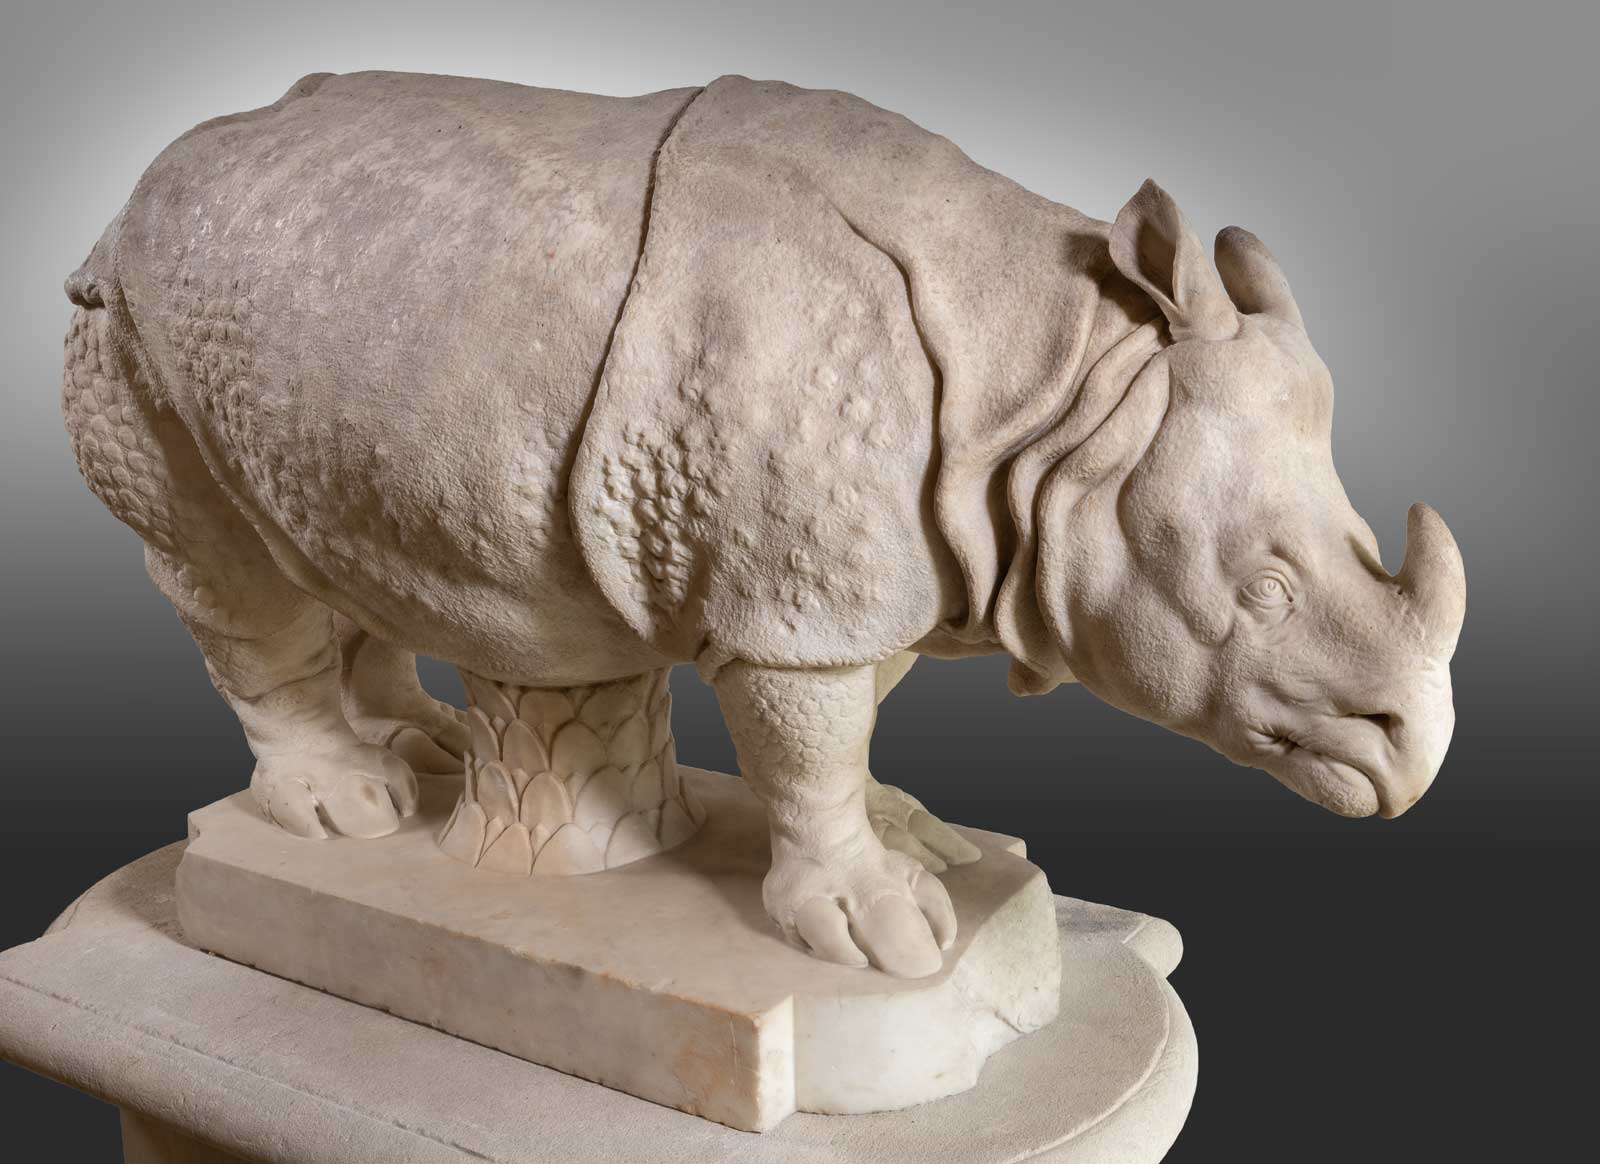 a marble carving of a rhinoceros